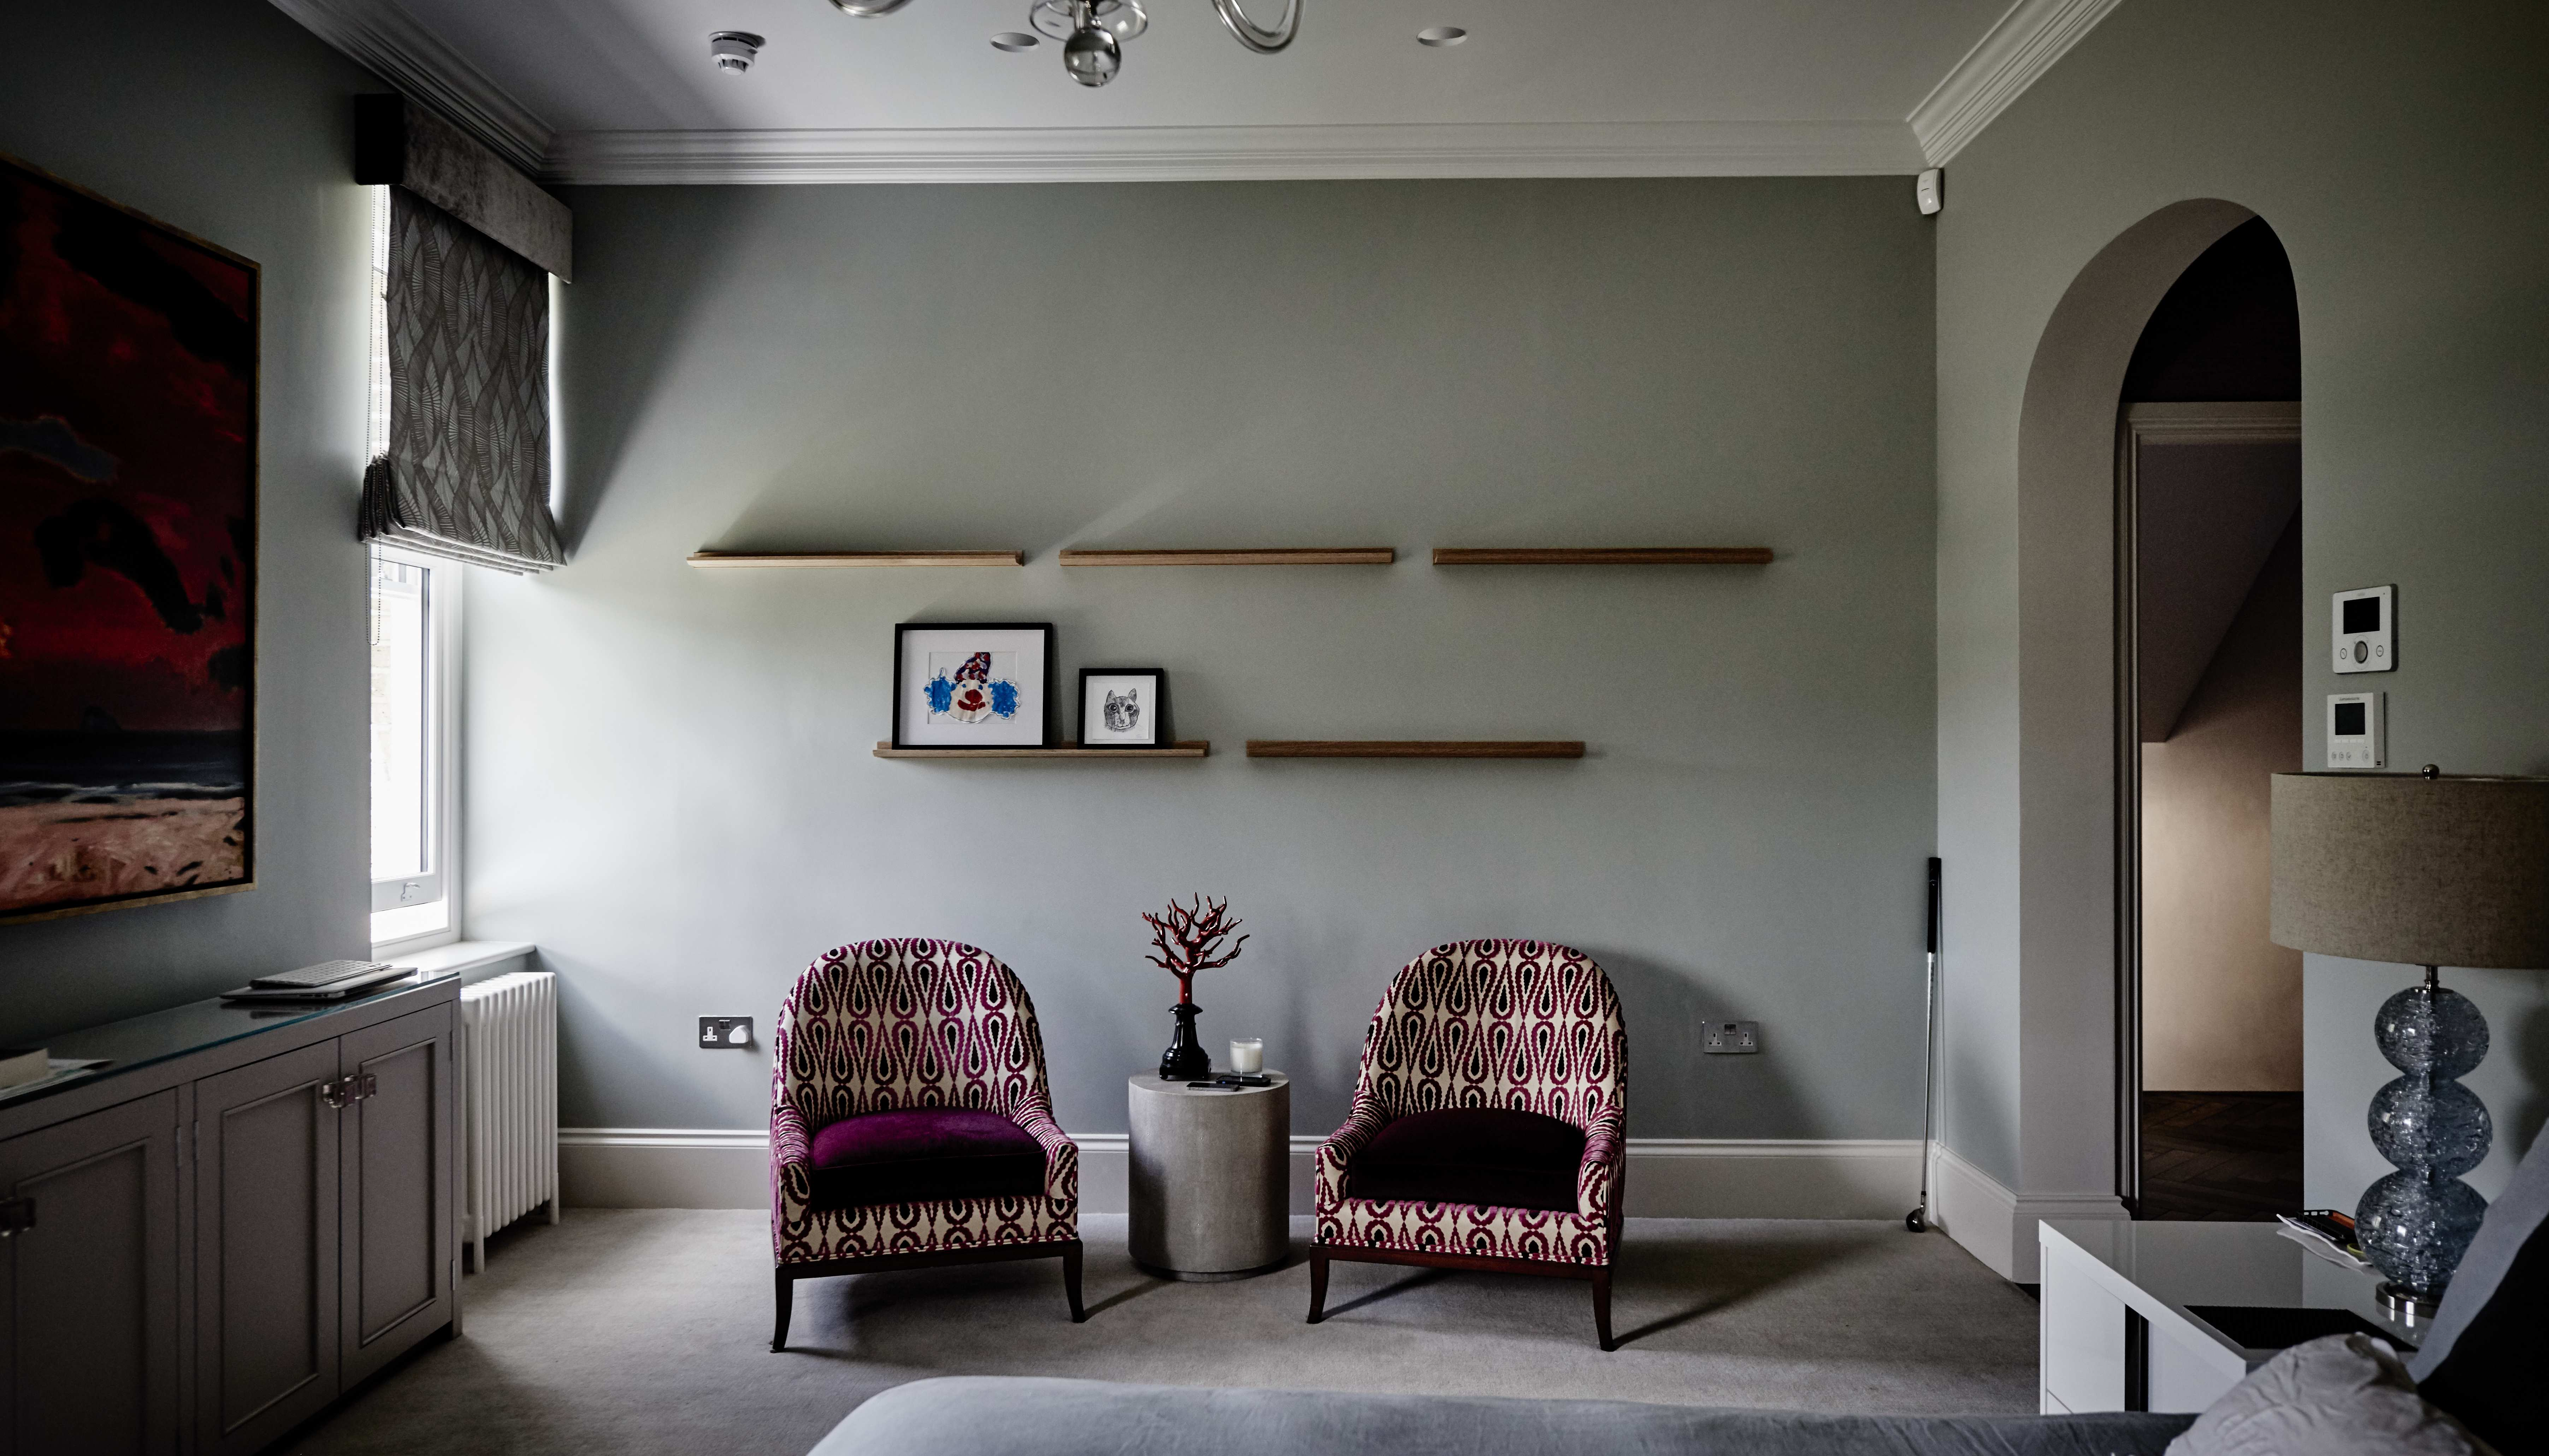 creativemass - basement extension and internal remodelling, light, furniture, bedroom, London